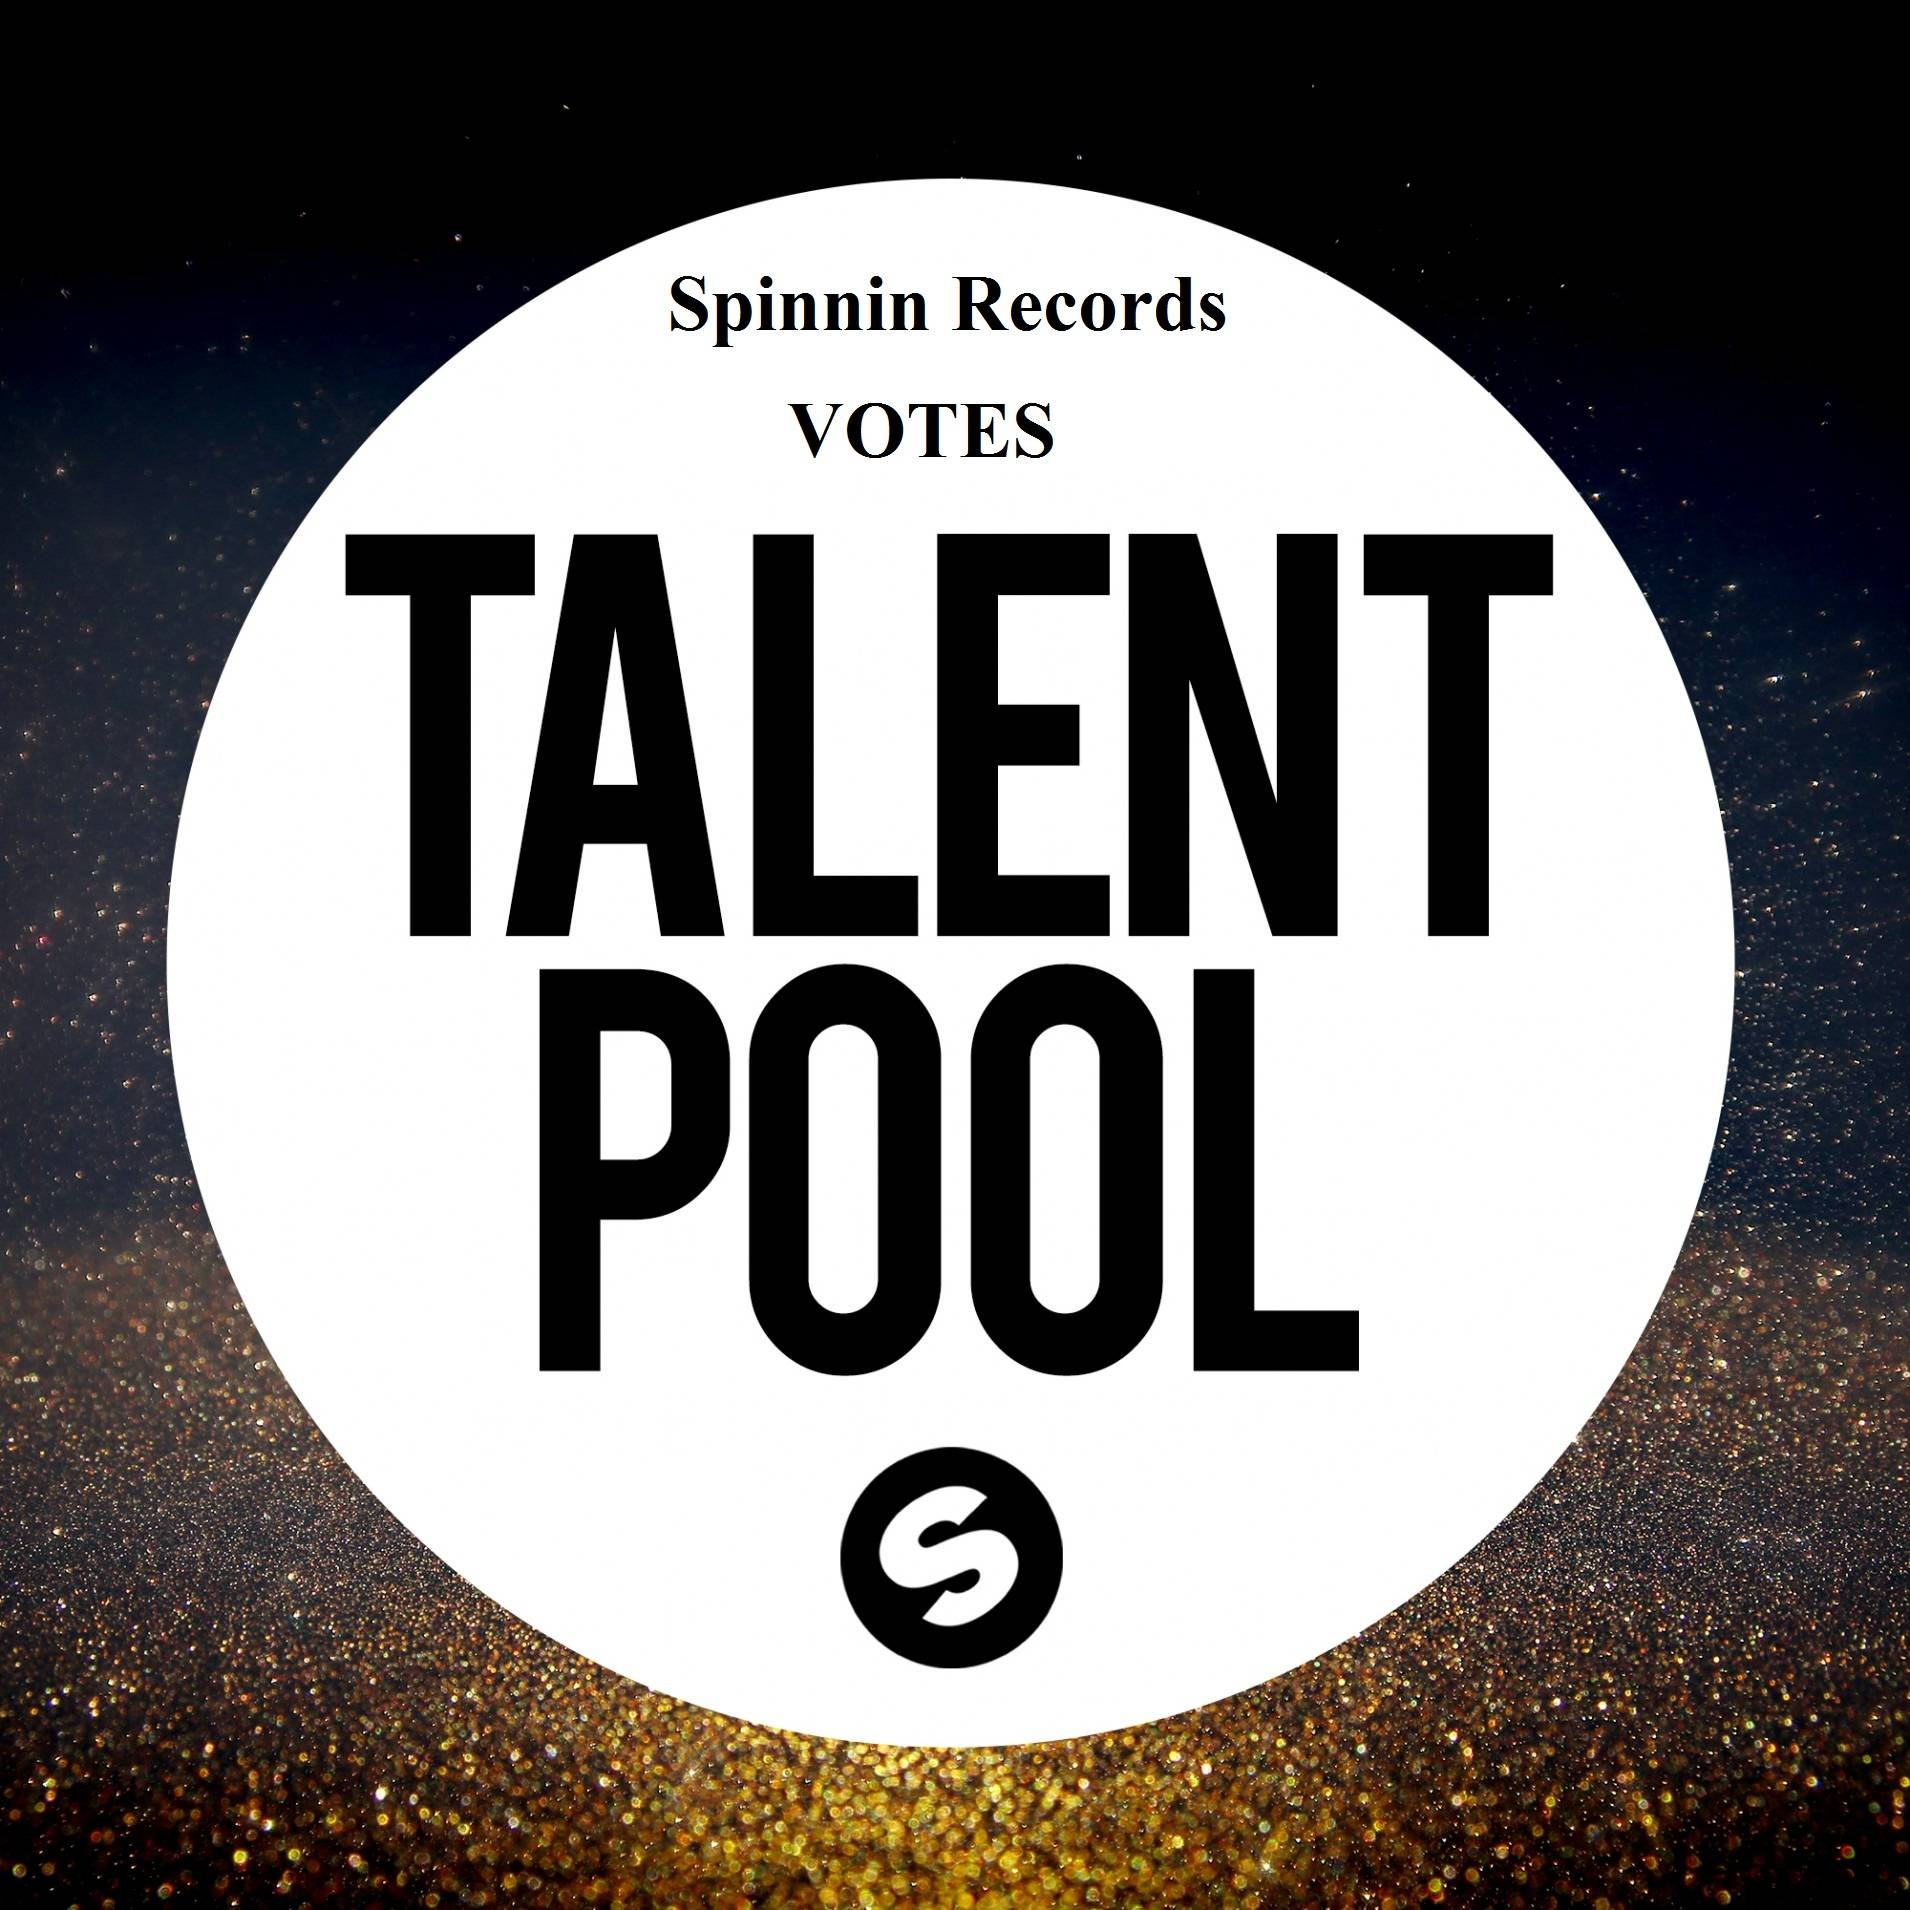 Get offer 100 Spinnin Records Talent Pool Votes from real USA people around